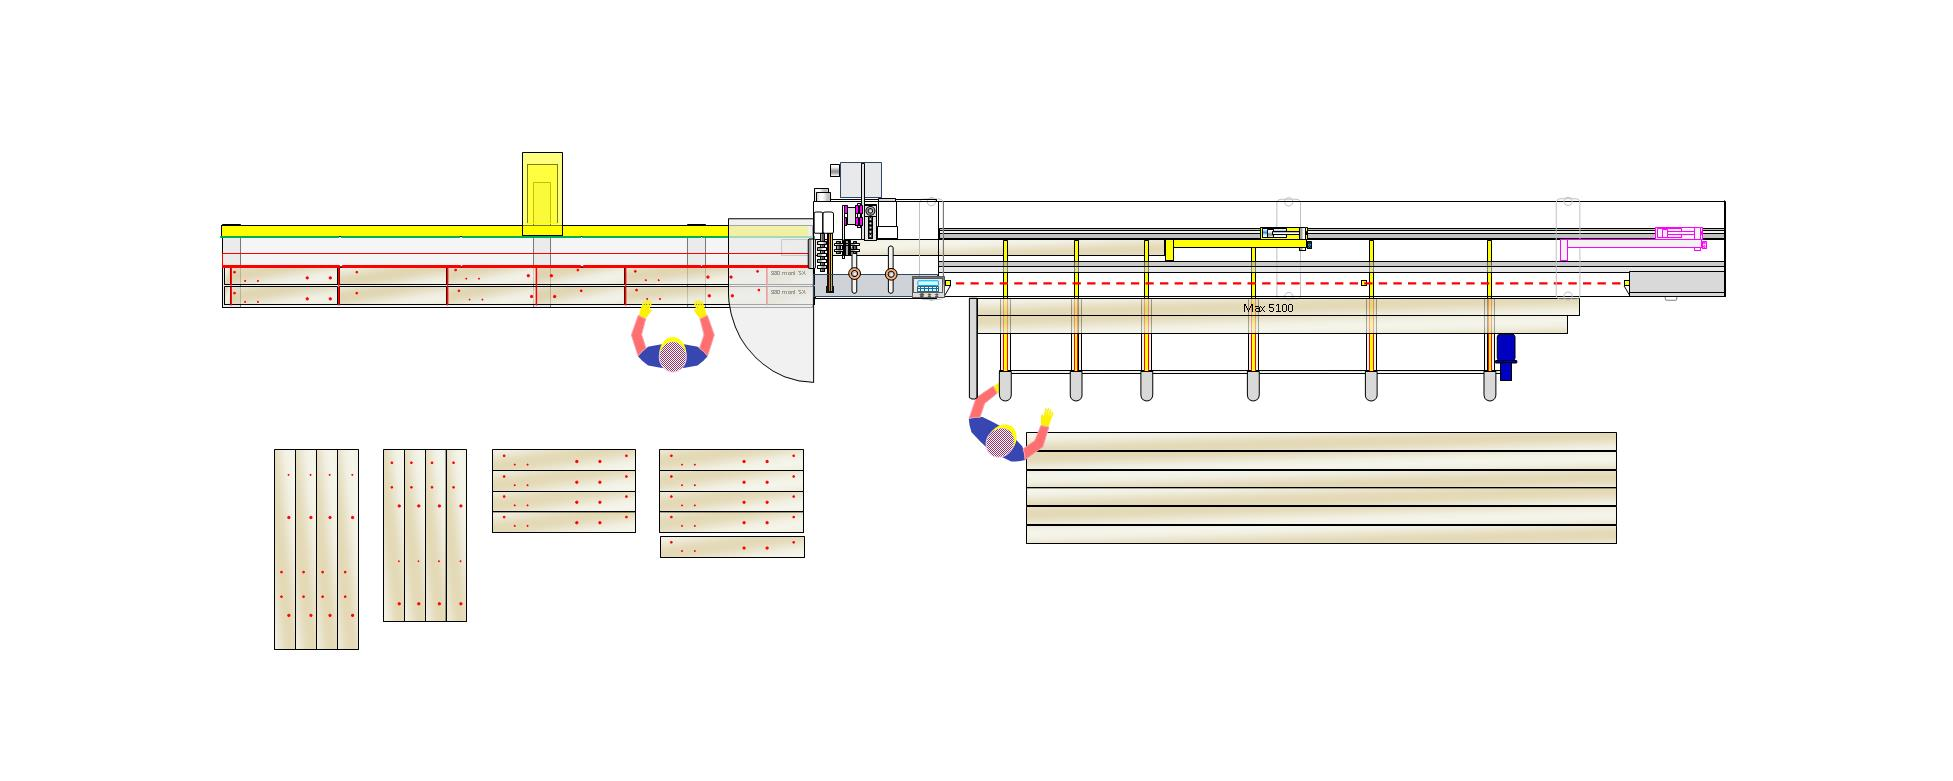 optimizing-push-feed-saws-trsi-500-integrated-drilling-system-Concept 04